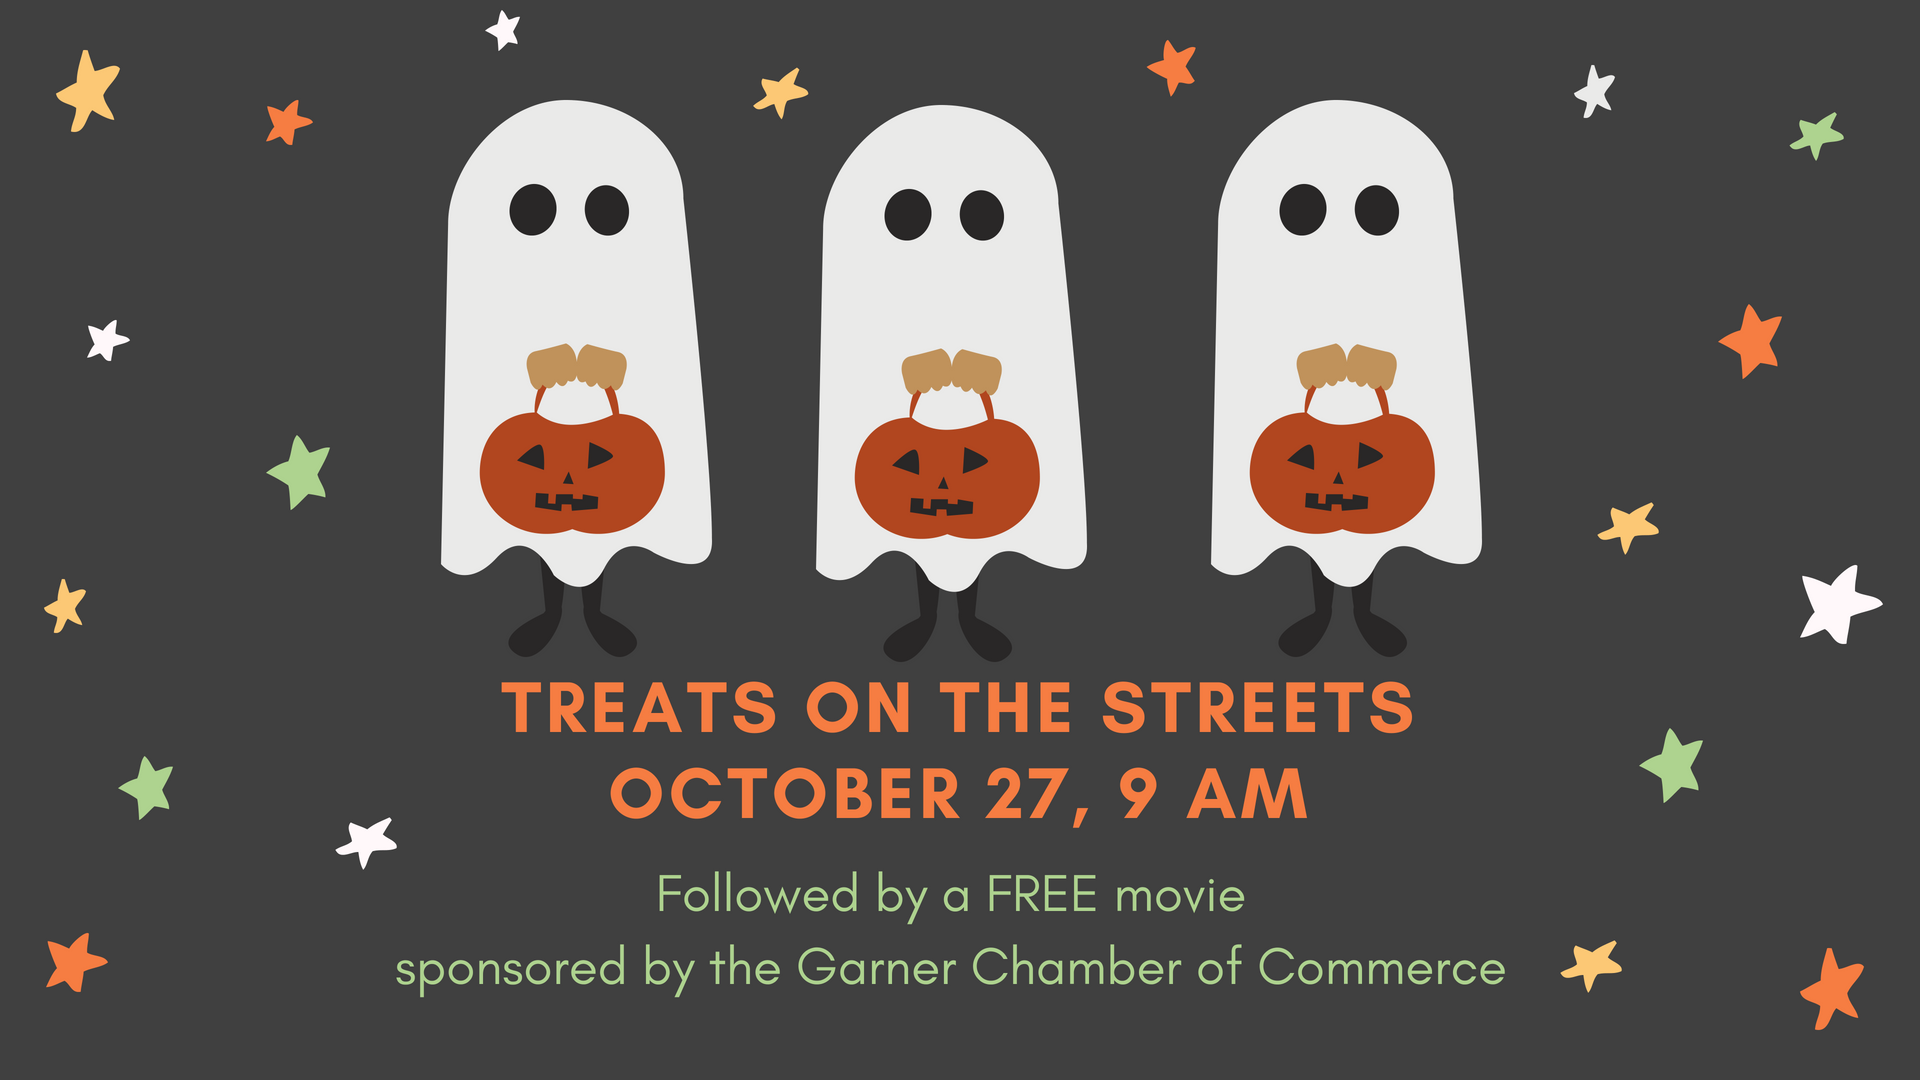 TreAts-on-the-streetsOctober-27.-9-am.png